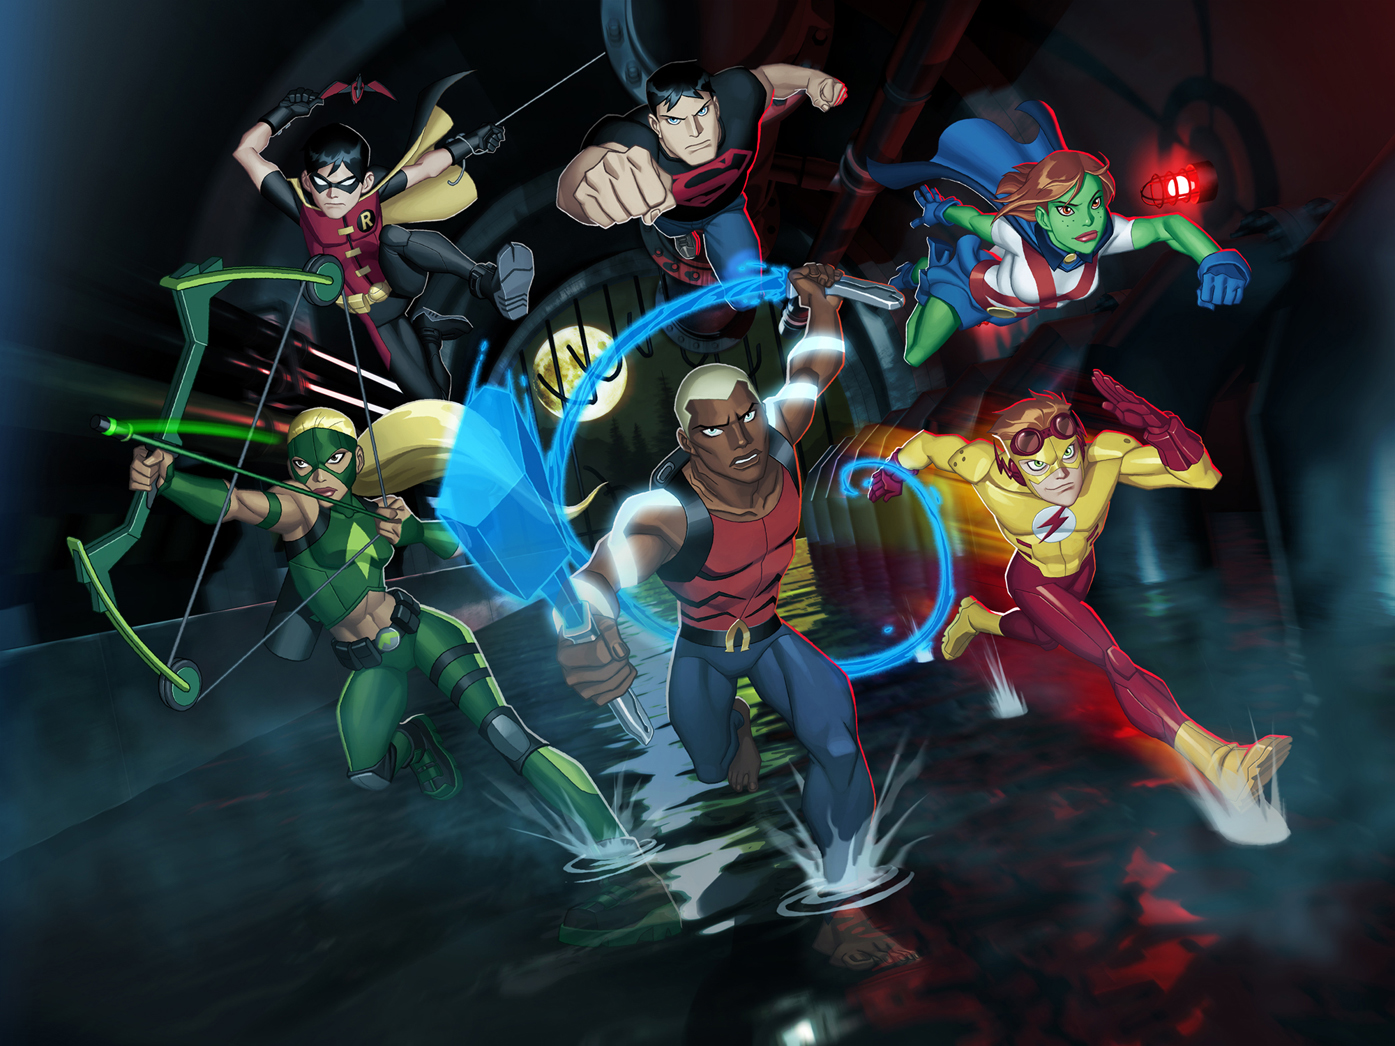 Young Justice 2012 Wallpaper   Superman Images Gallery 1395x1046